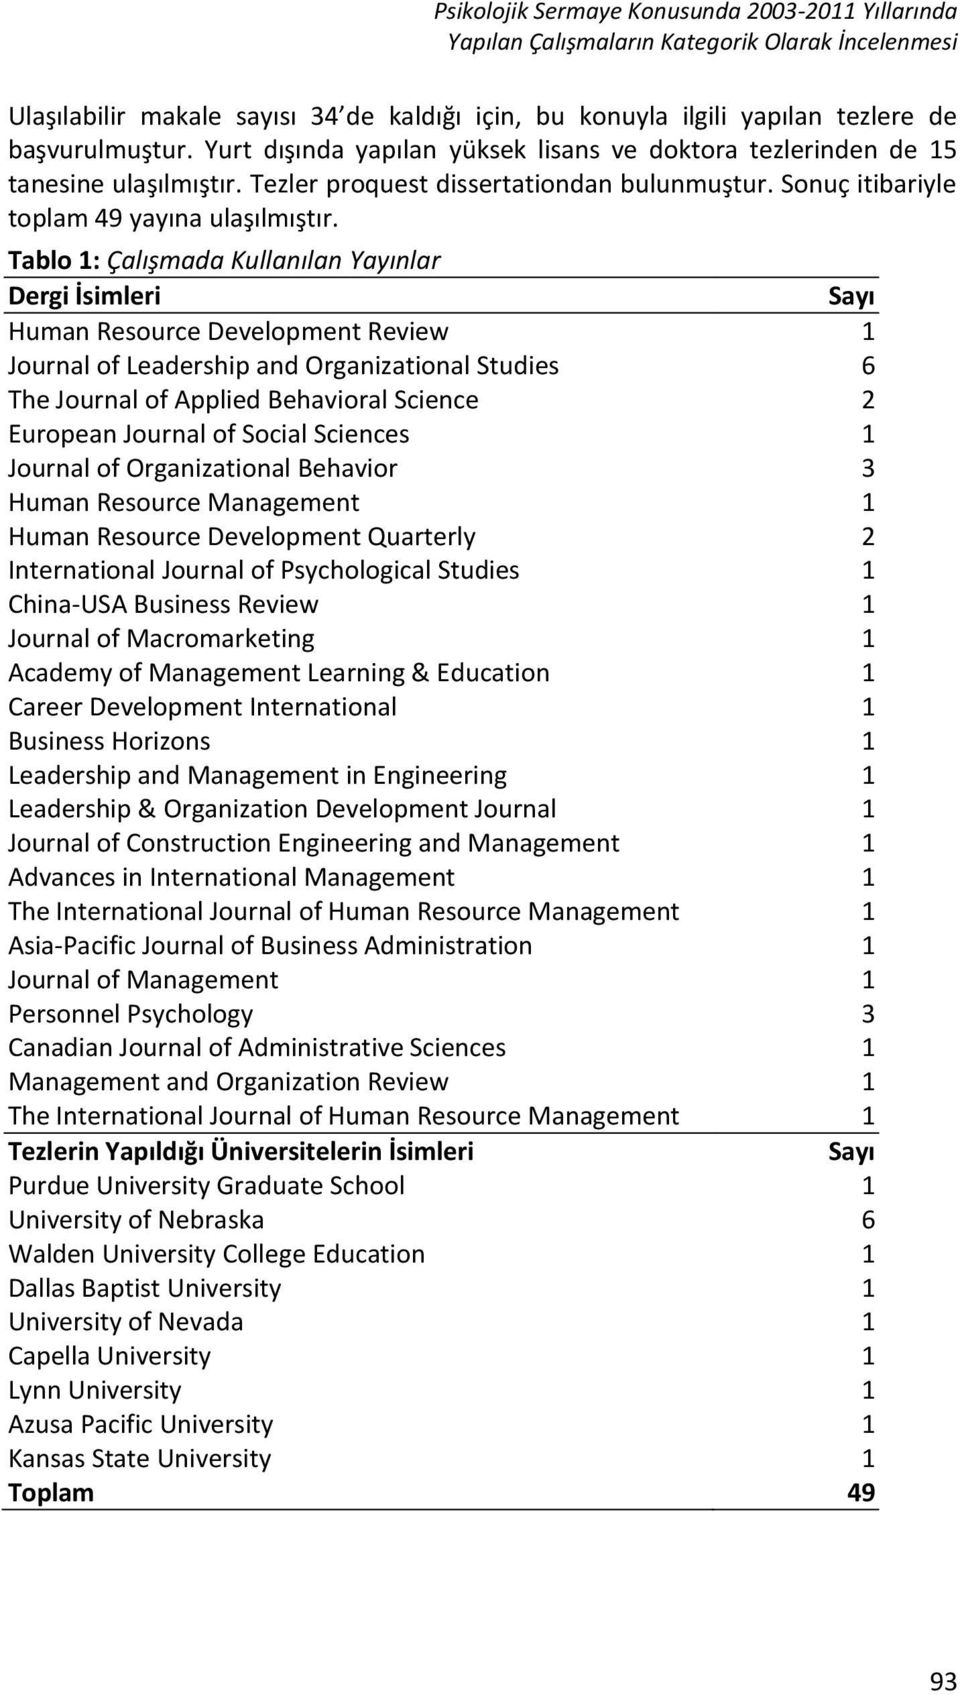 Tablo 1: Çalışmada Kullanılan Yayınlar Dergi İsimleri Human Resource Development Review 1 Journal of Leadership and Organizational Studies 6 The Journal of Applied Behavioral Science 2 European